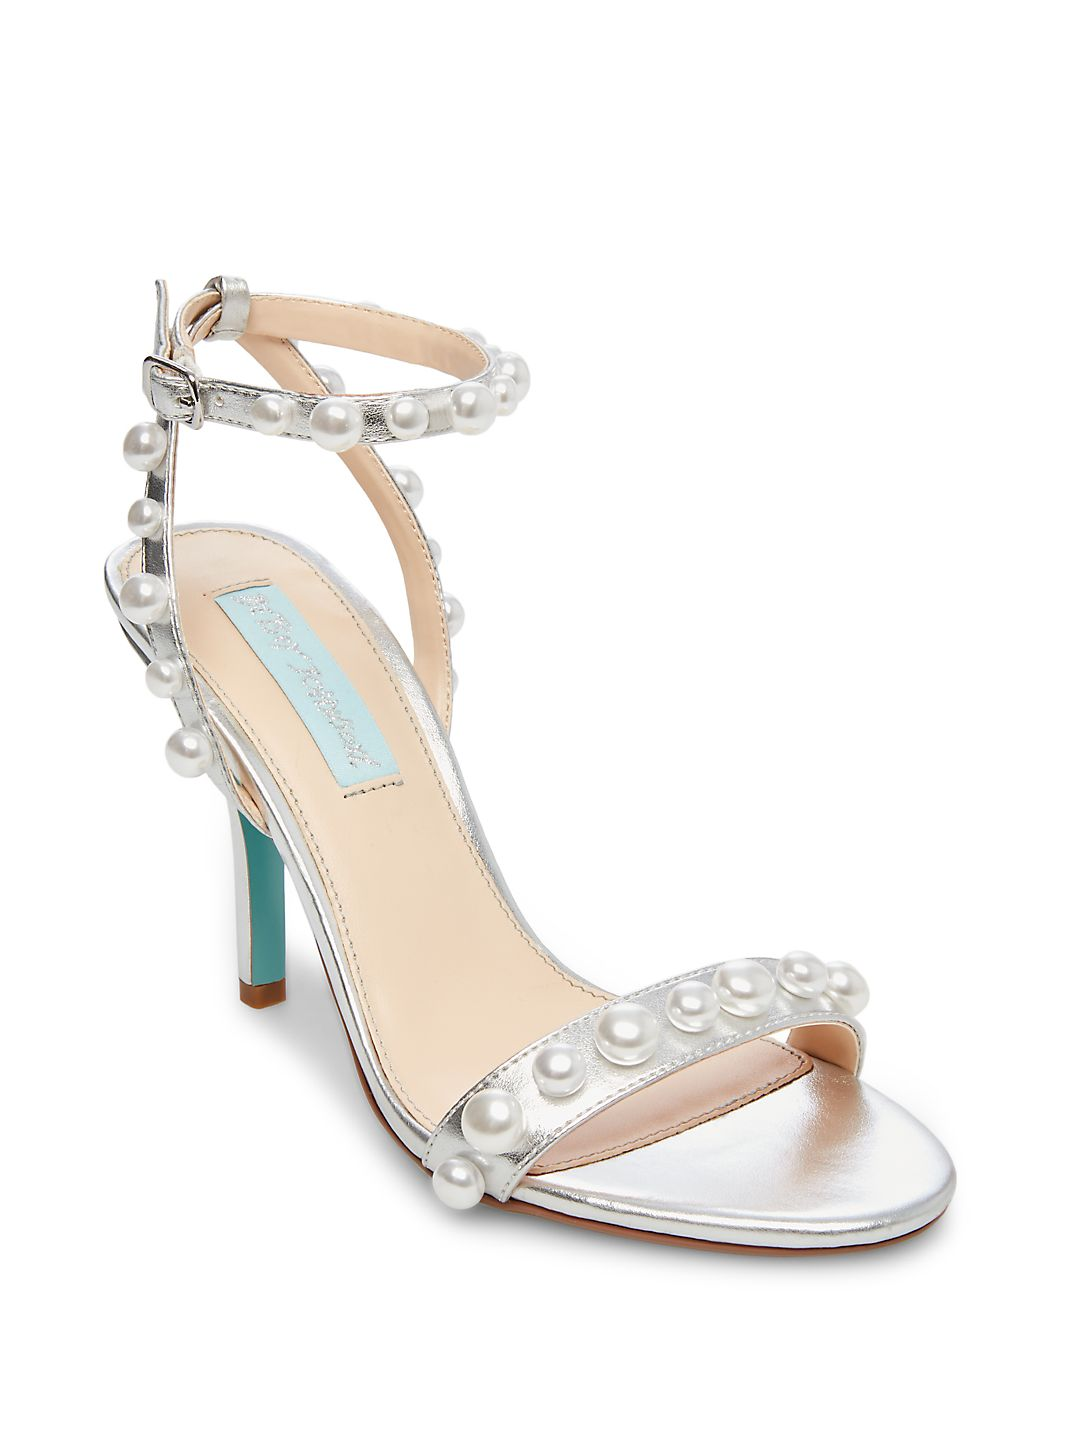 Embellished Metallic Sandals